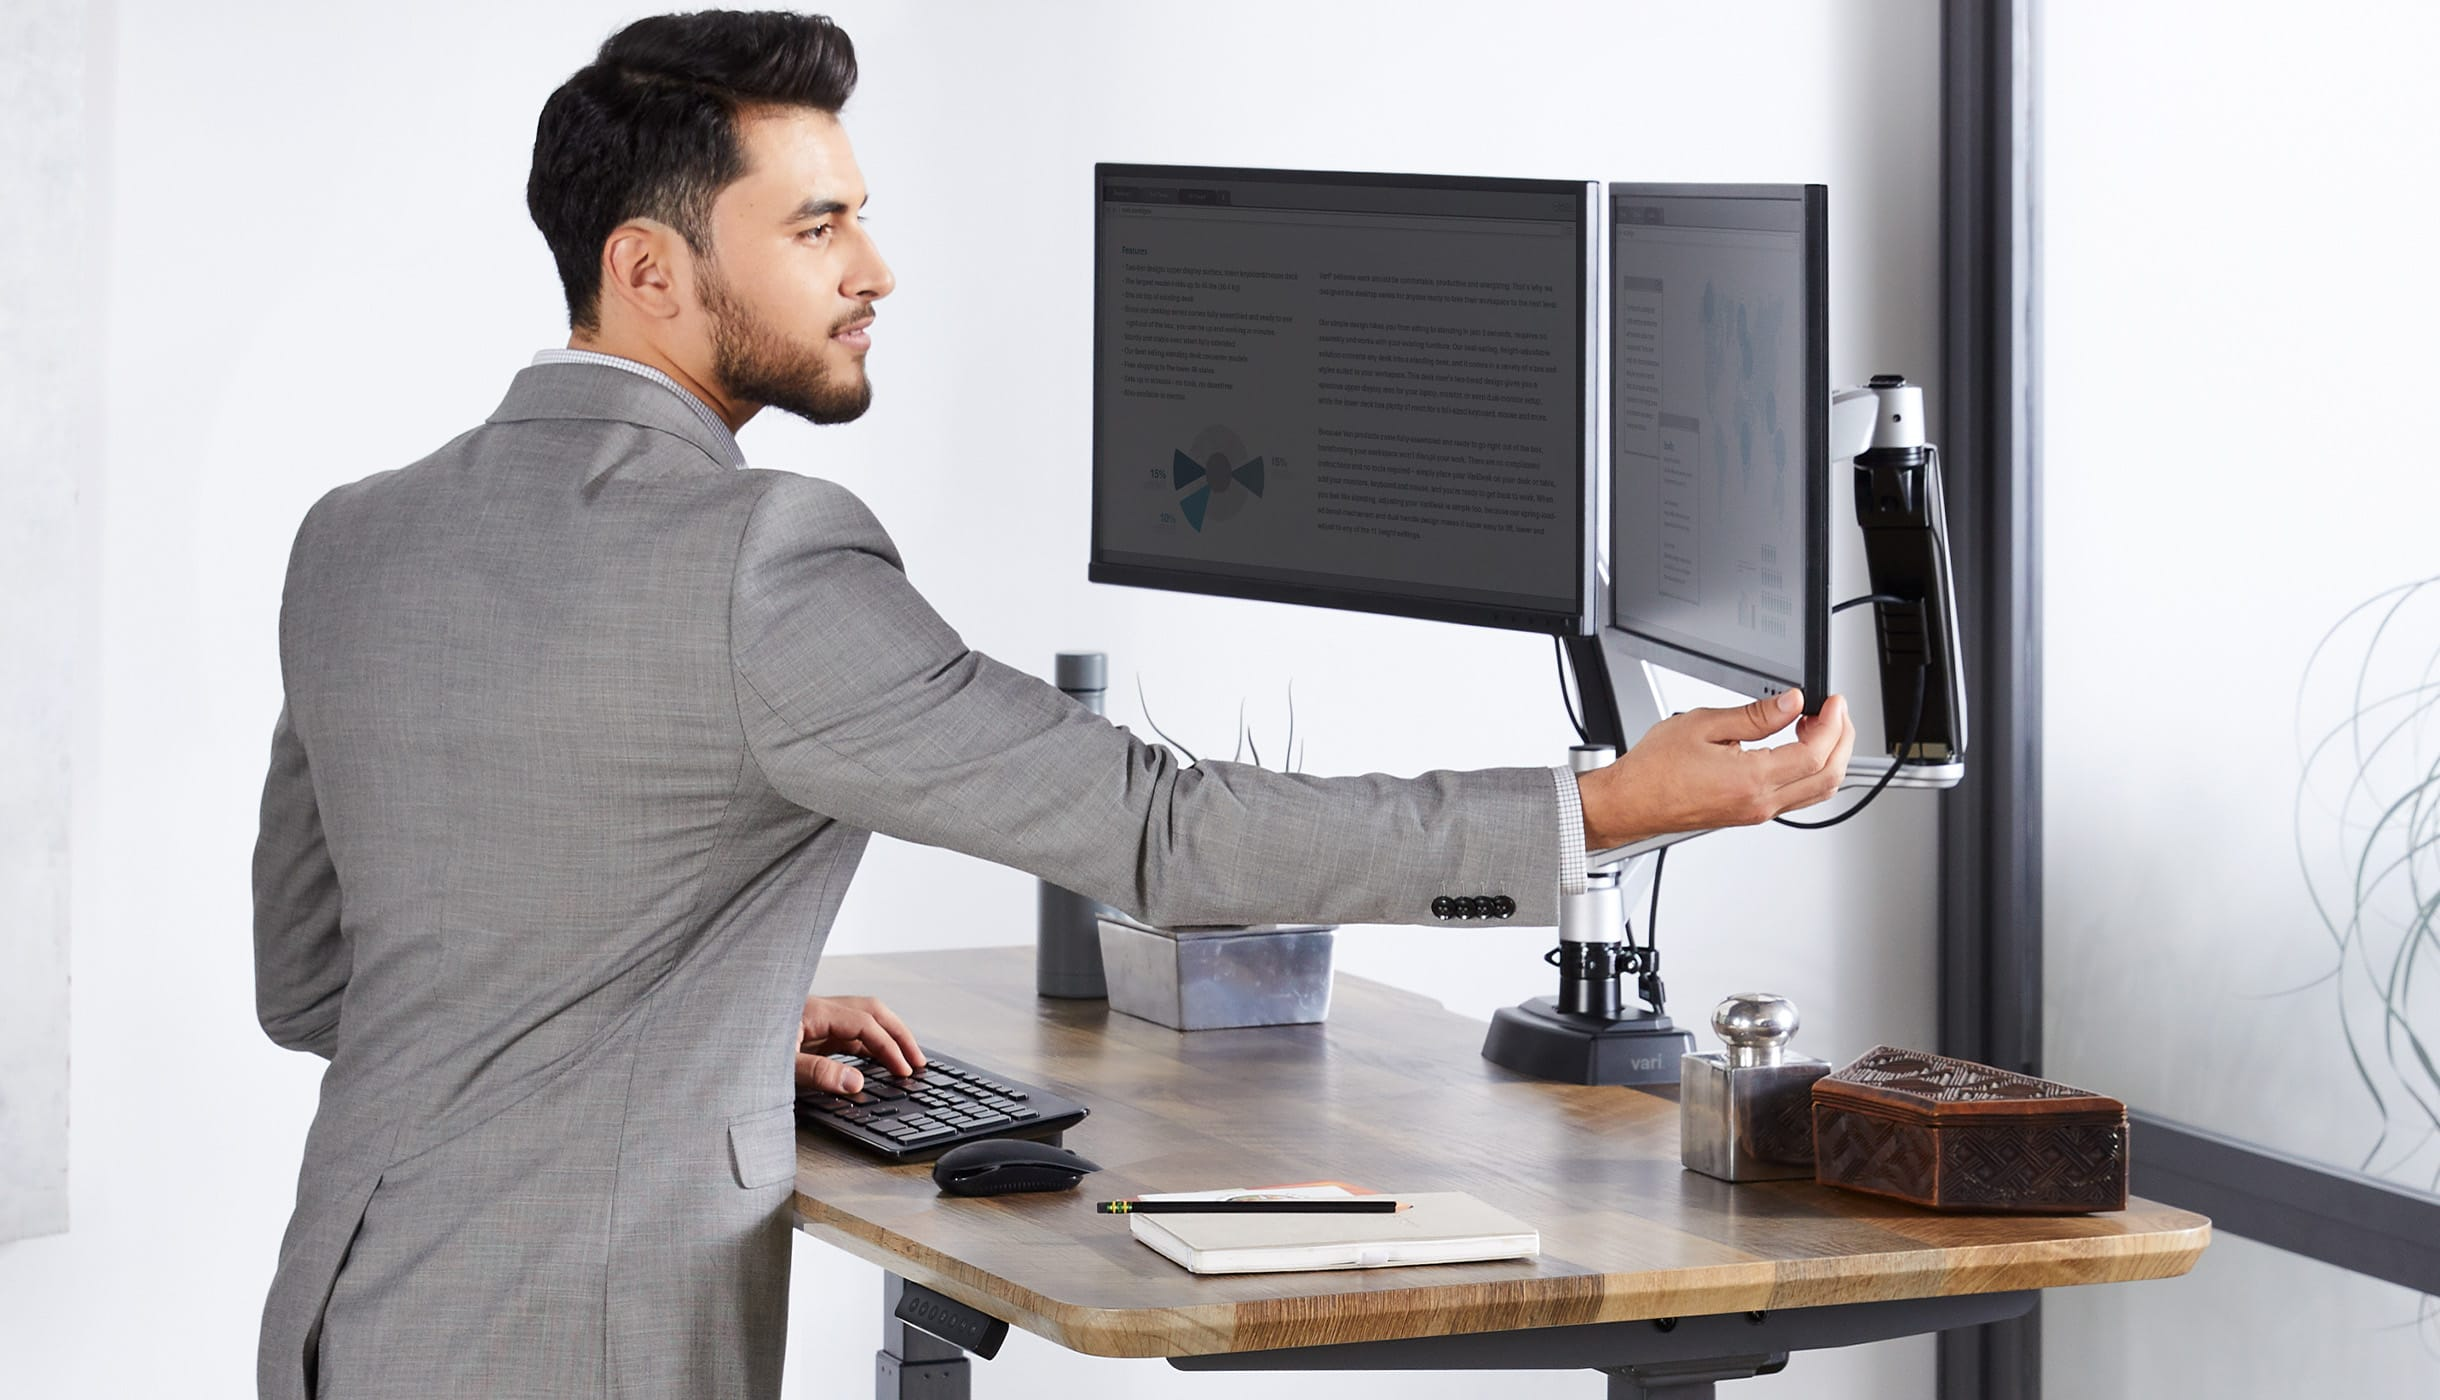 professional adjusts his monitors easily with one hand to ensure it's properly placed for the best posture.